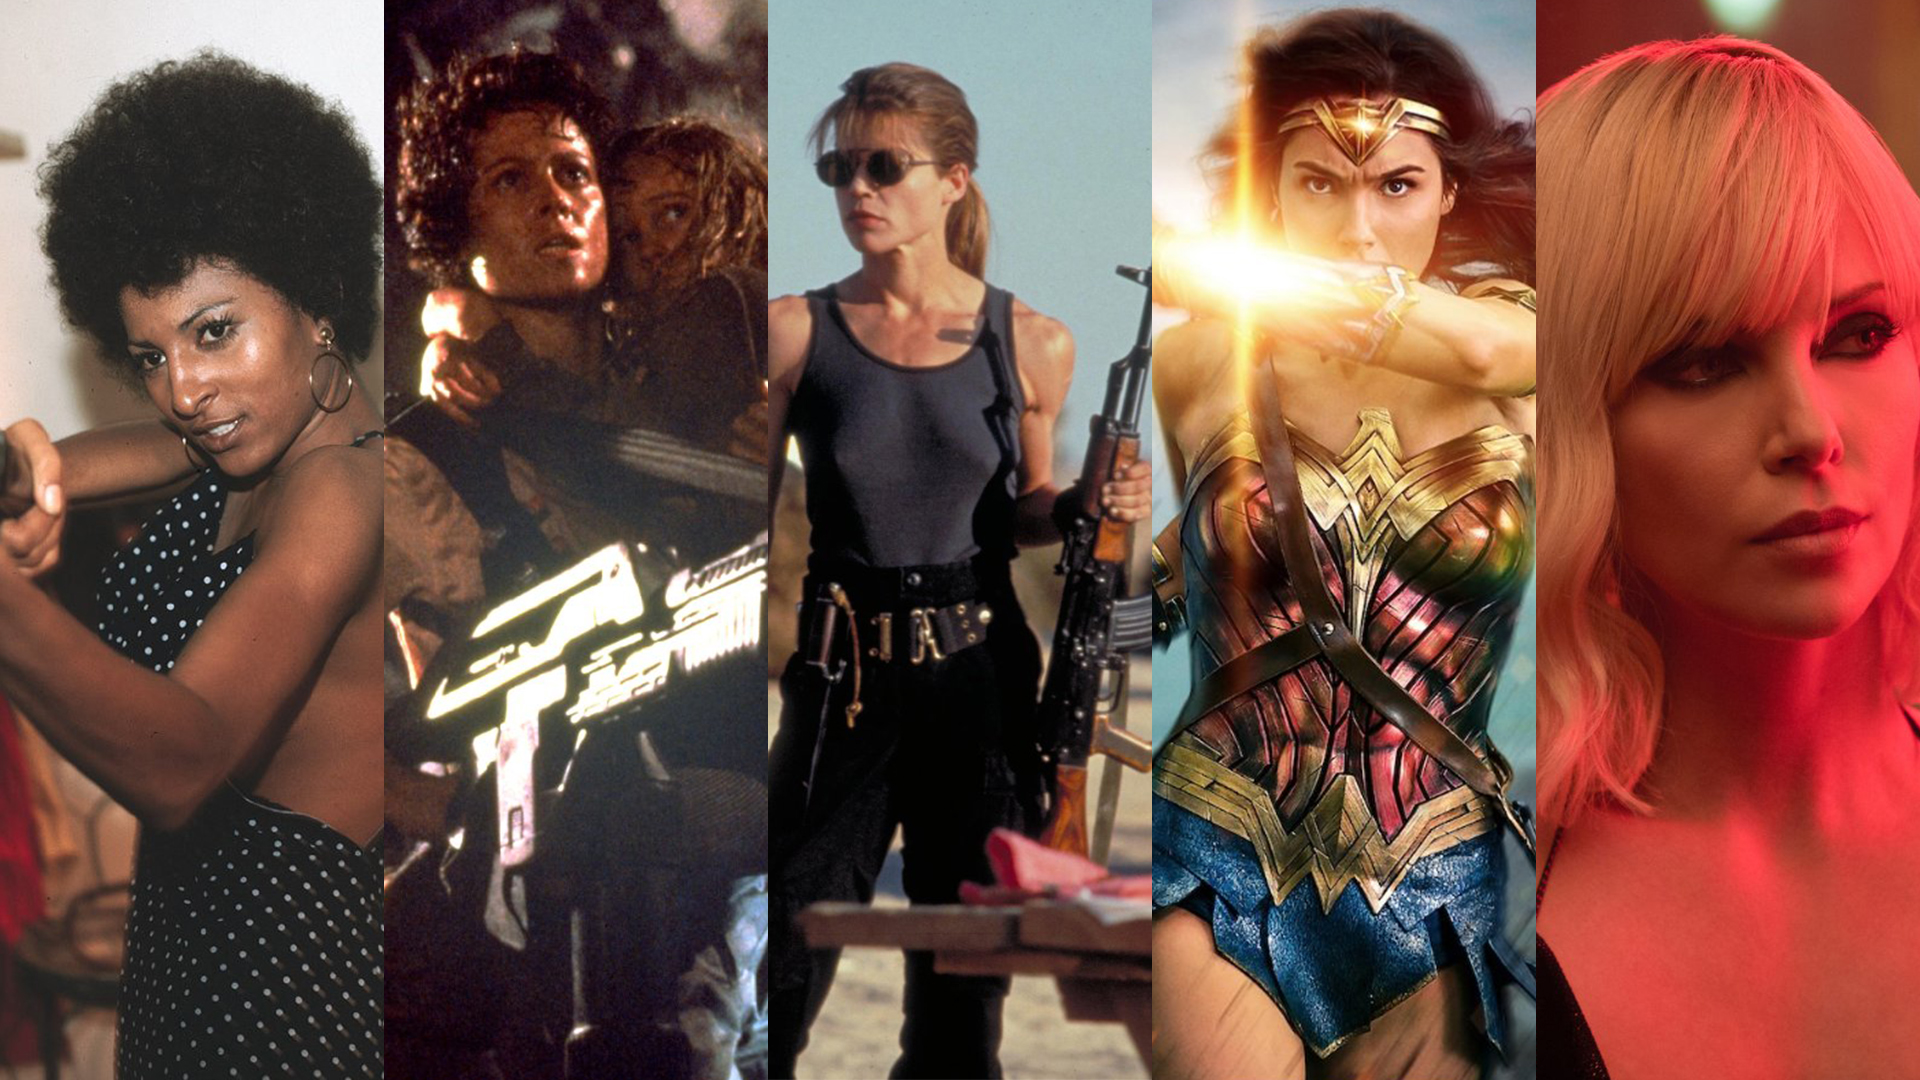 The Top Ten Action Movie Heroines